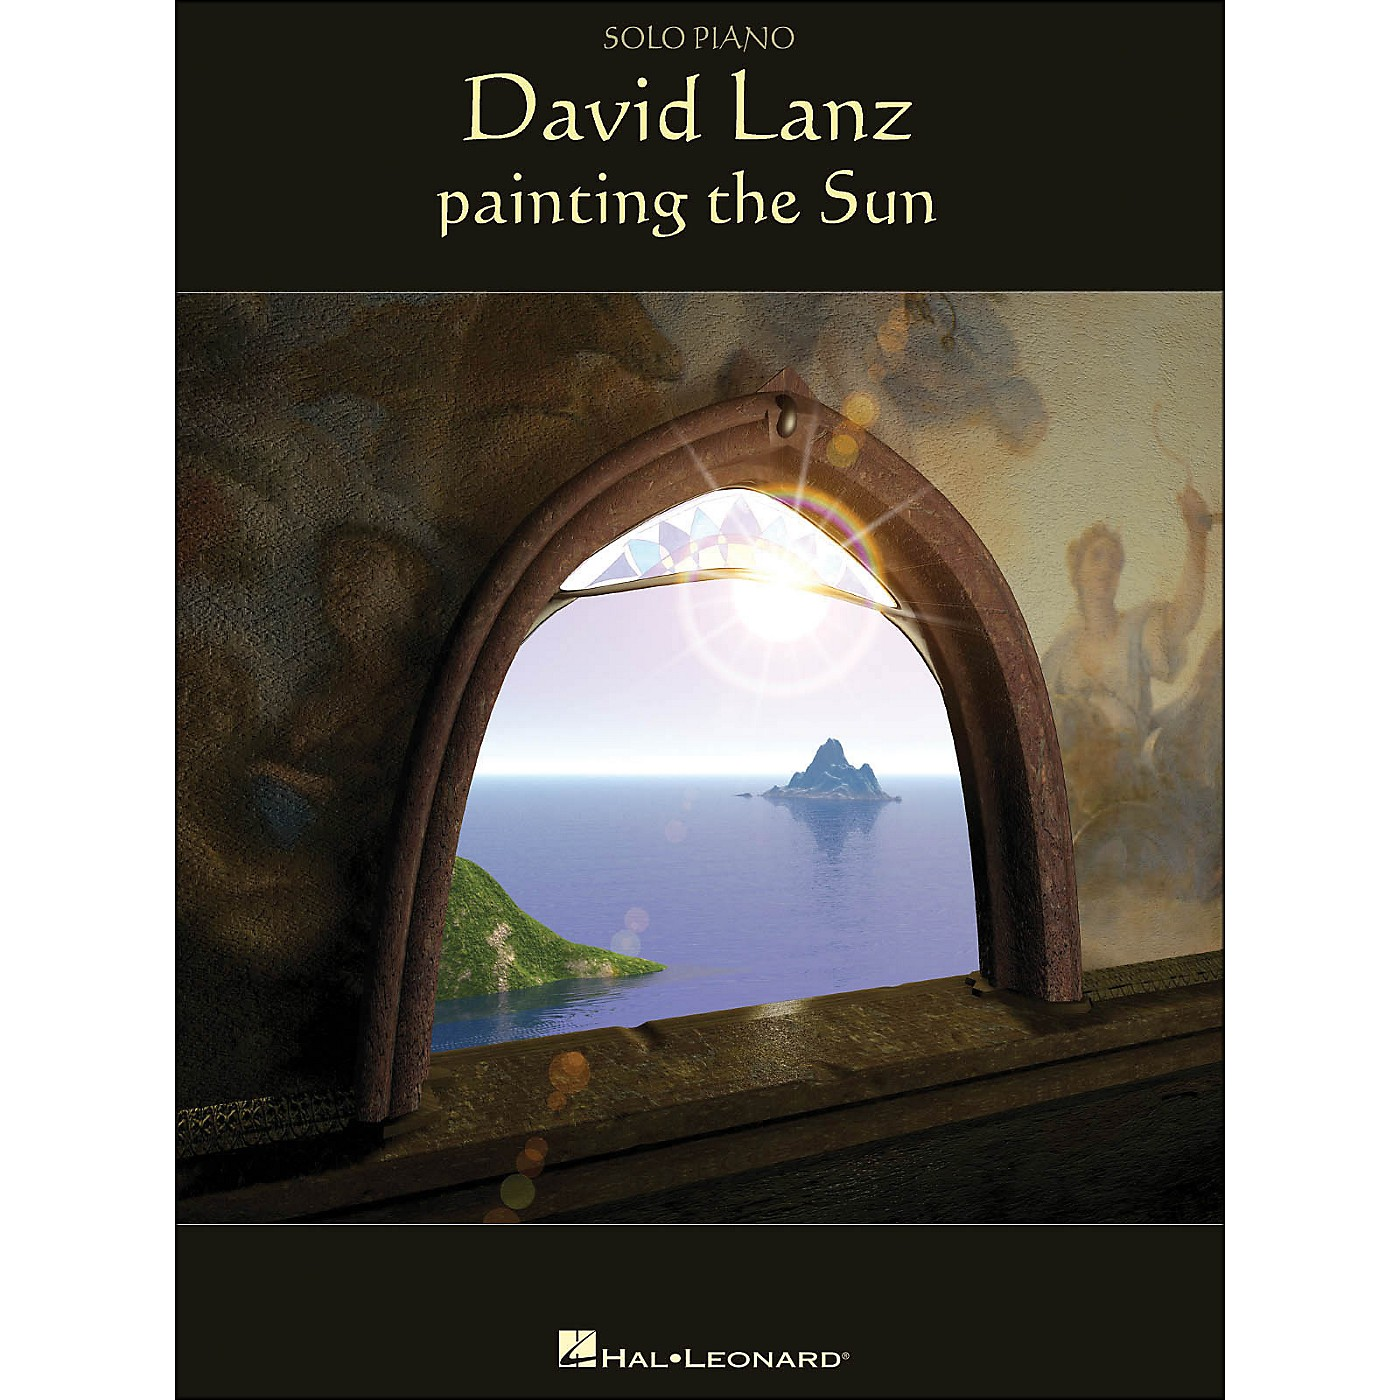 Hal Leonard David Lanz - Painting The Sun arranged for piano solo thumbnail